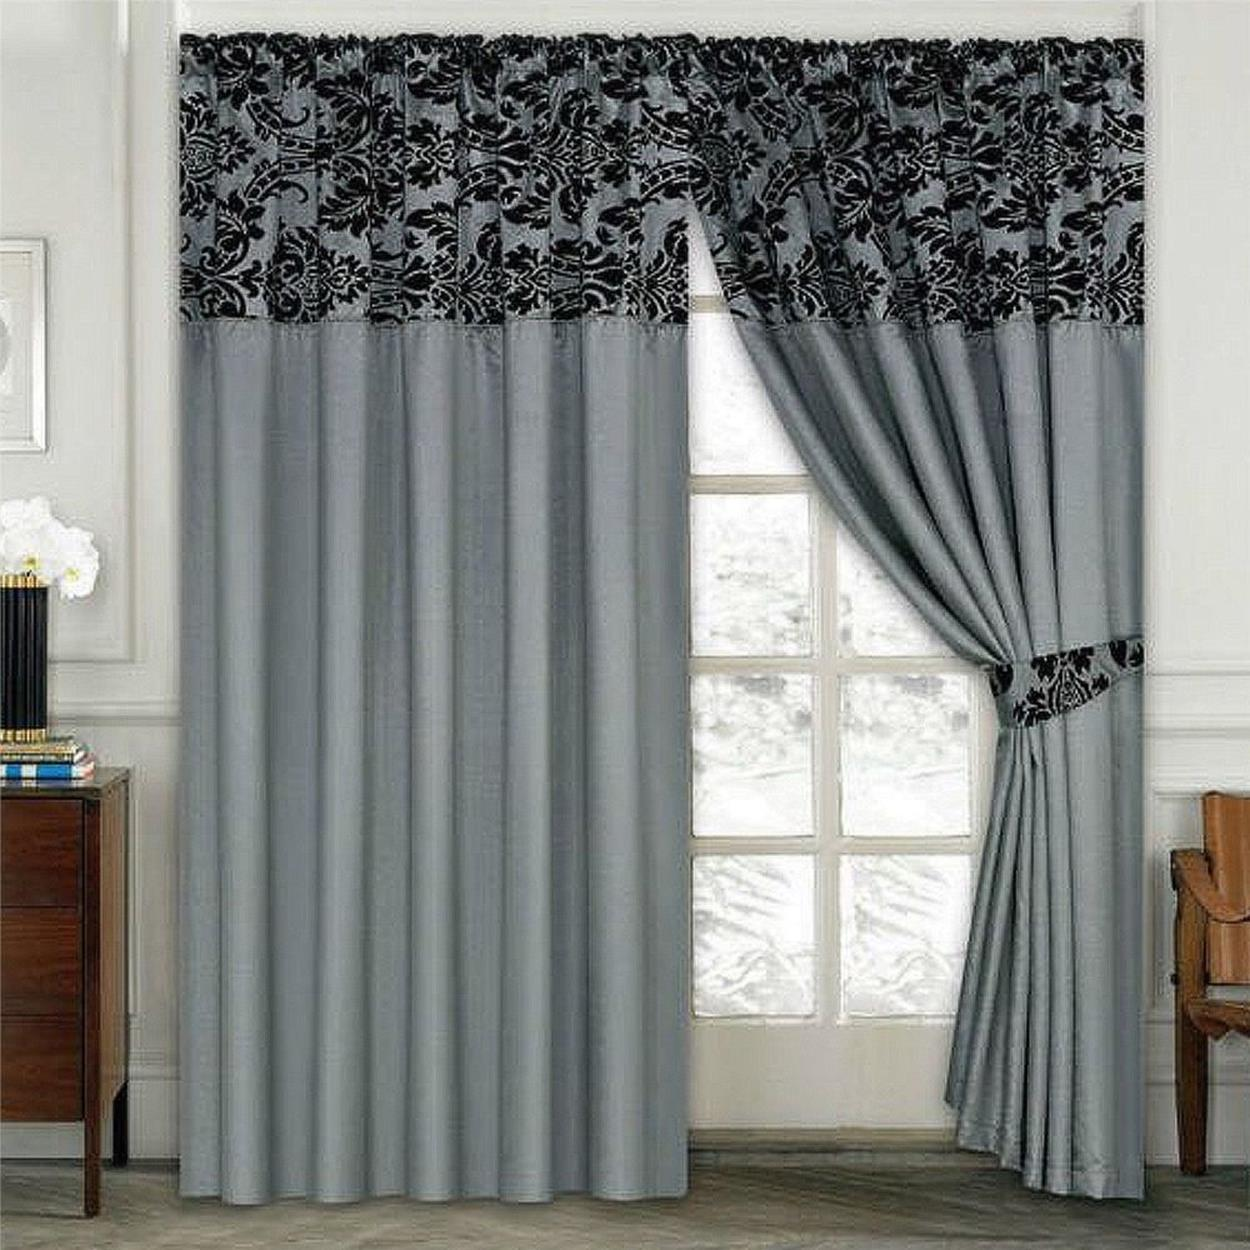 Perfect Cheap Curtains for a Small Apartment 10